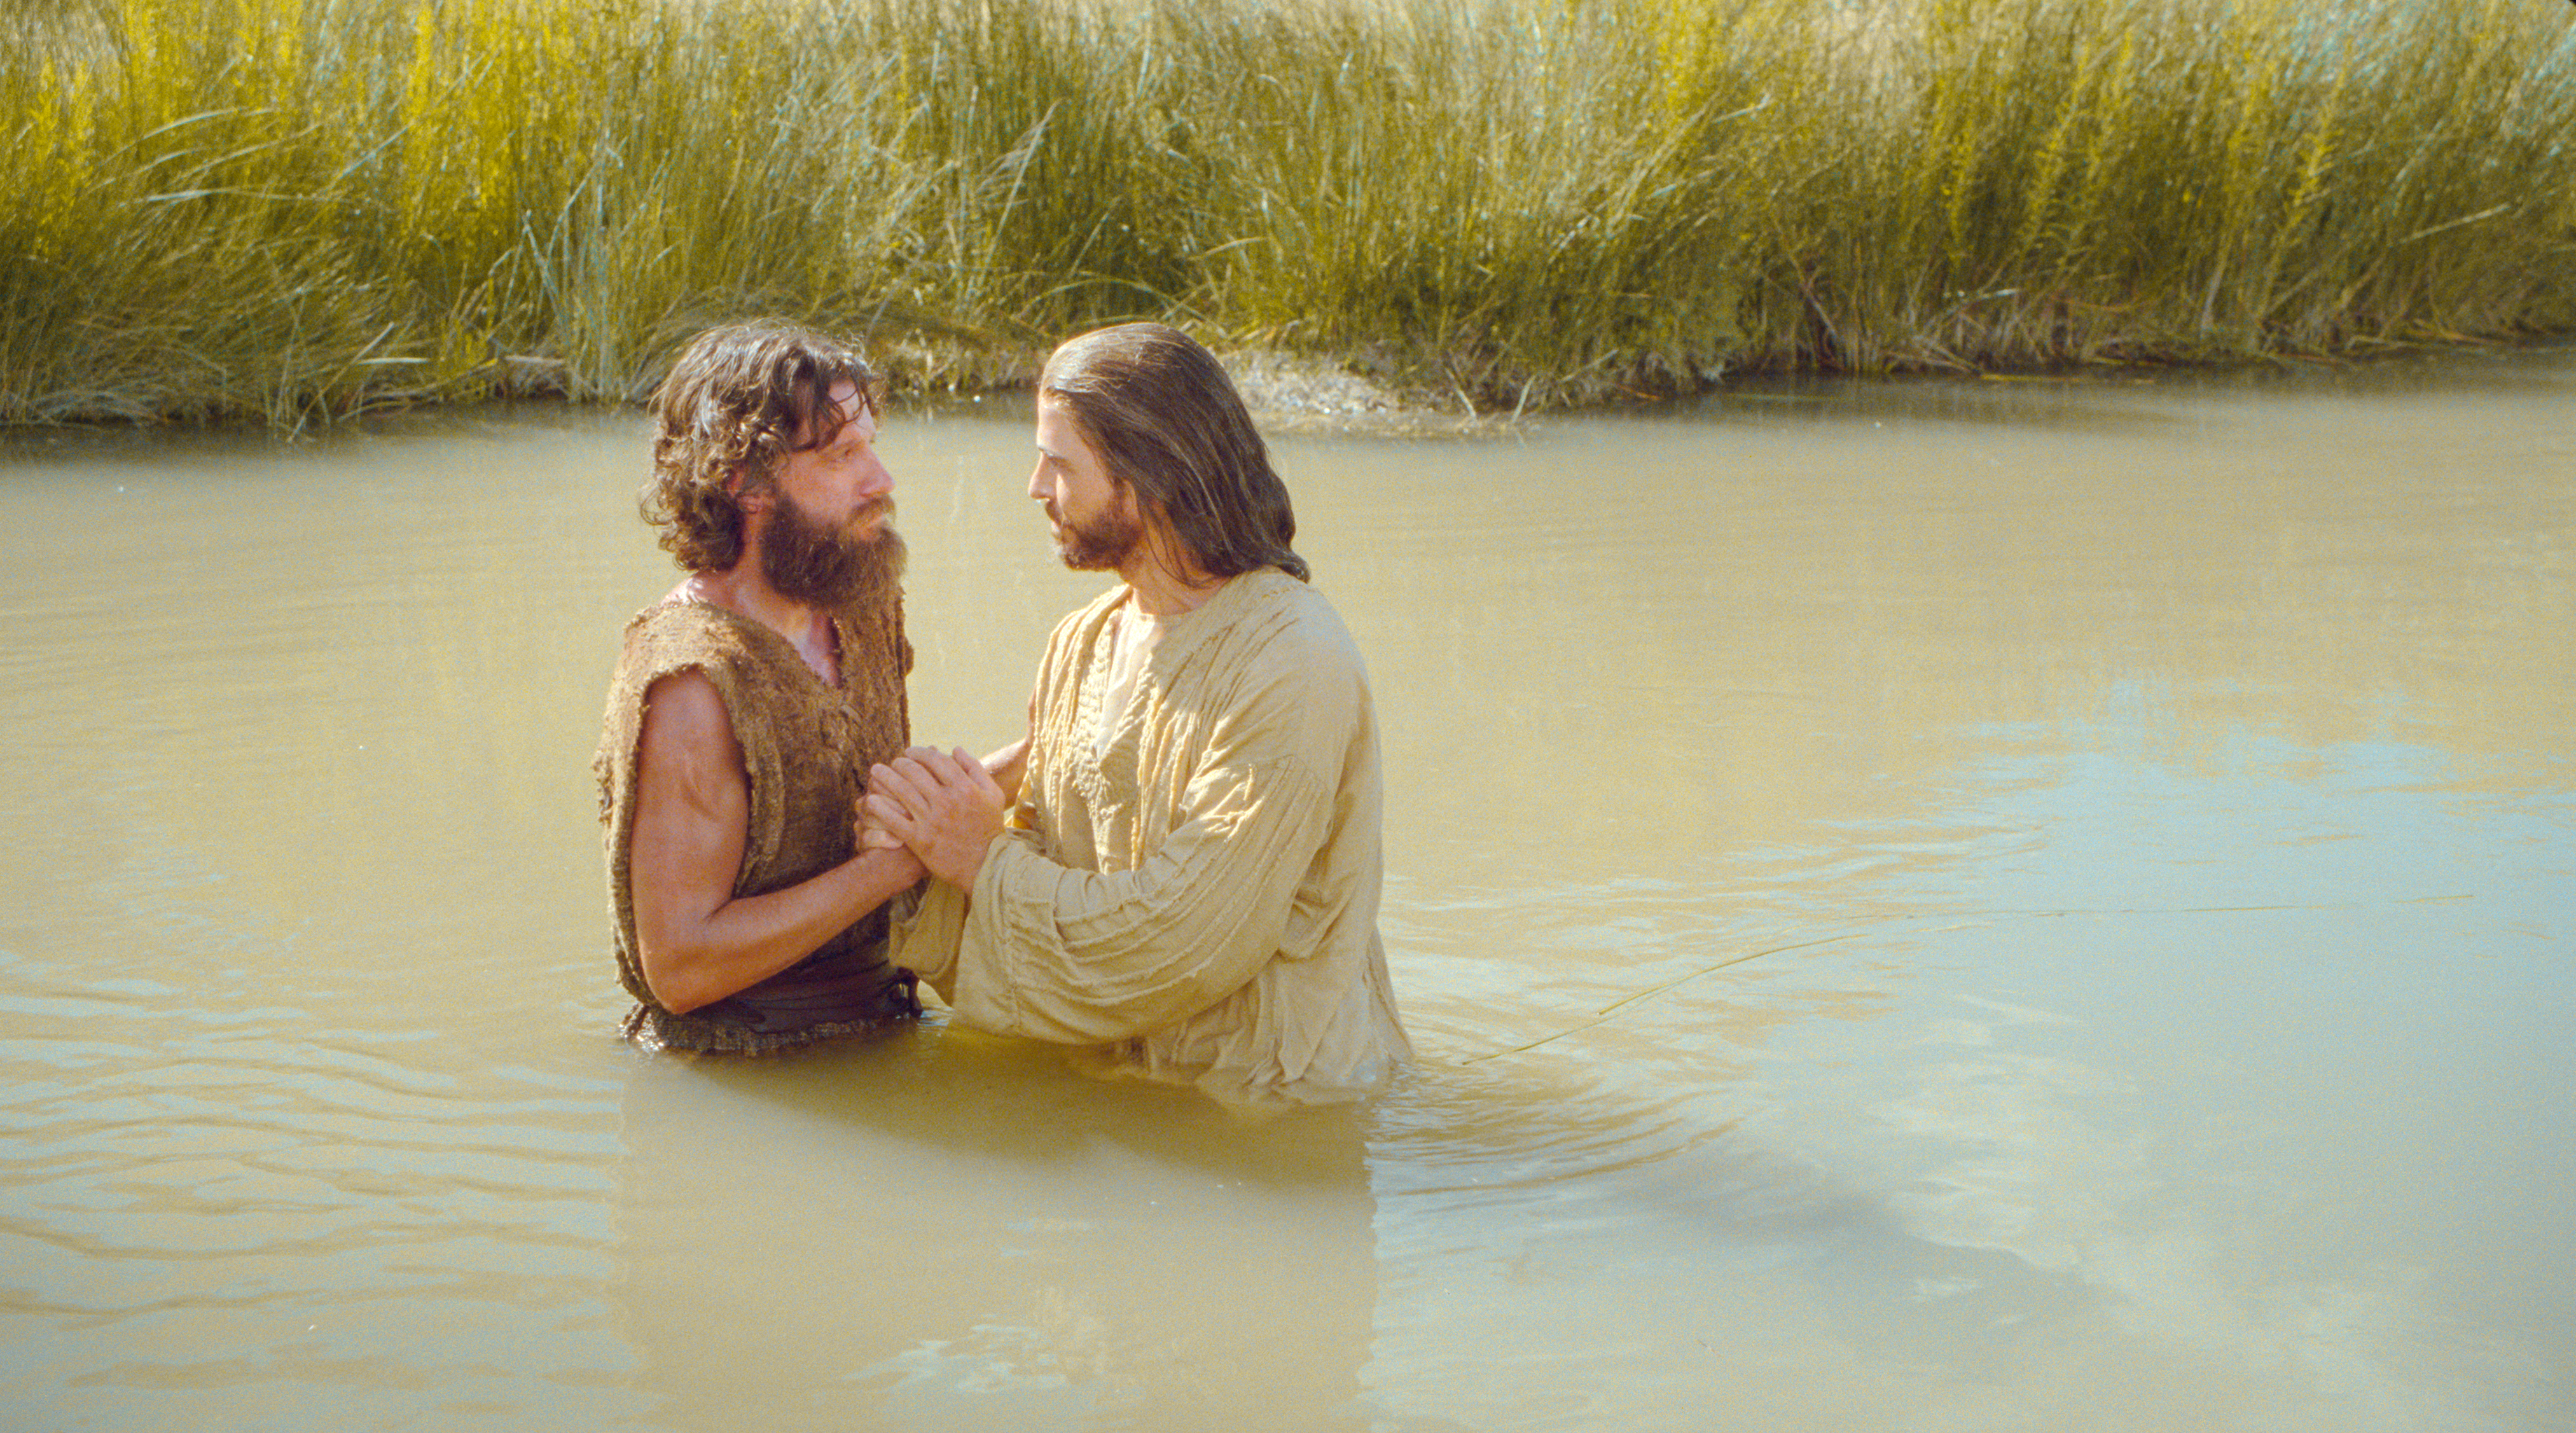 As Jesus enters the water to be baptized, John declares that he must be baptized by Jesus. Jesus responds that He must be baptized to fulfill all righteousness.